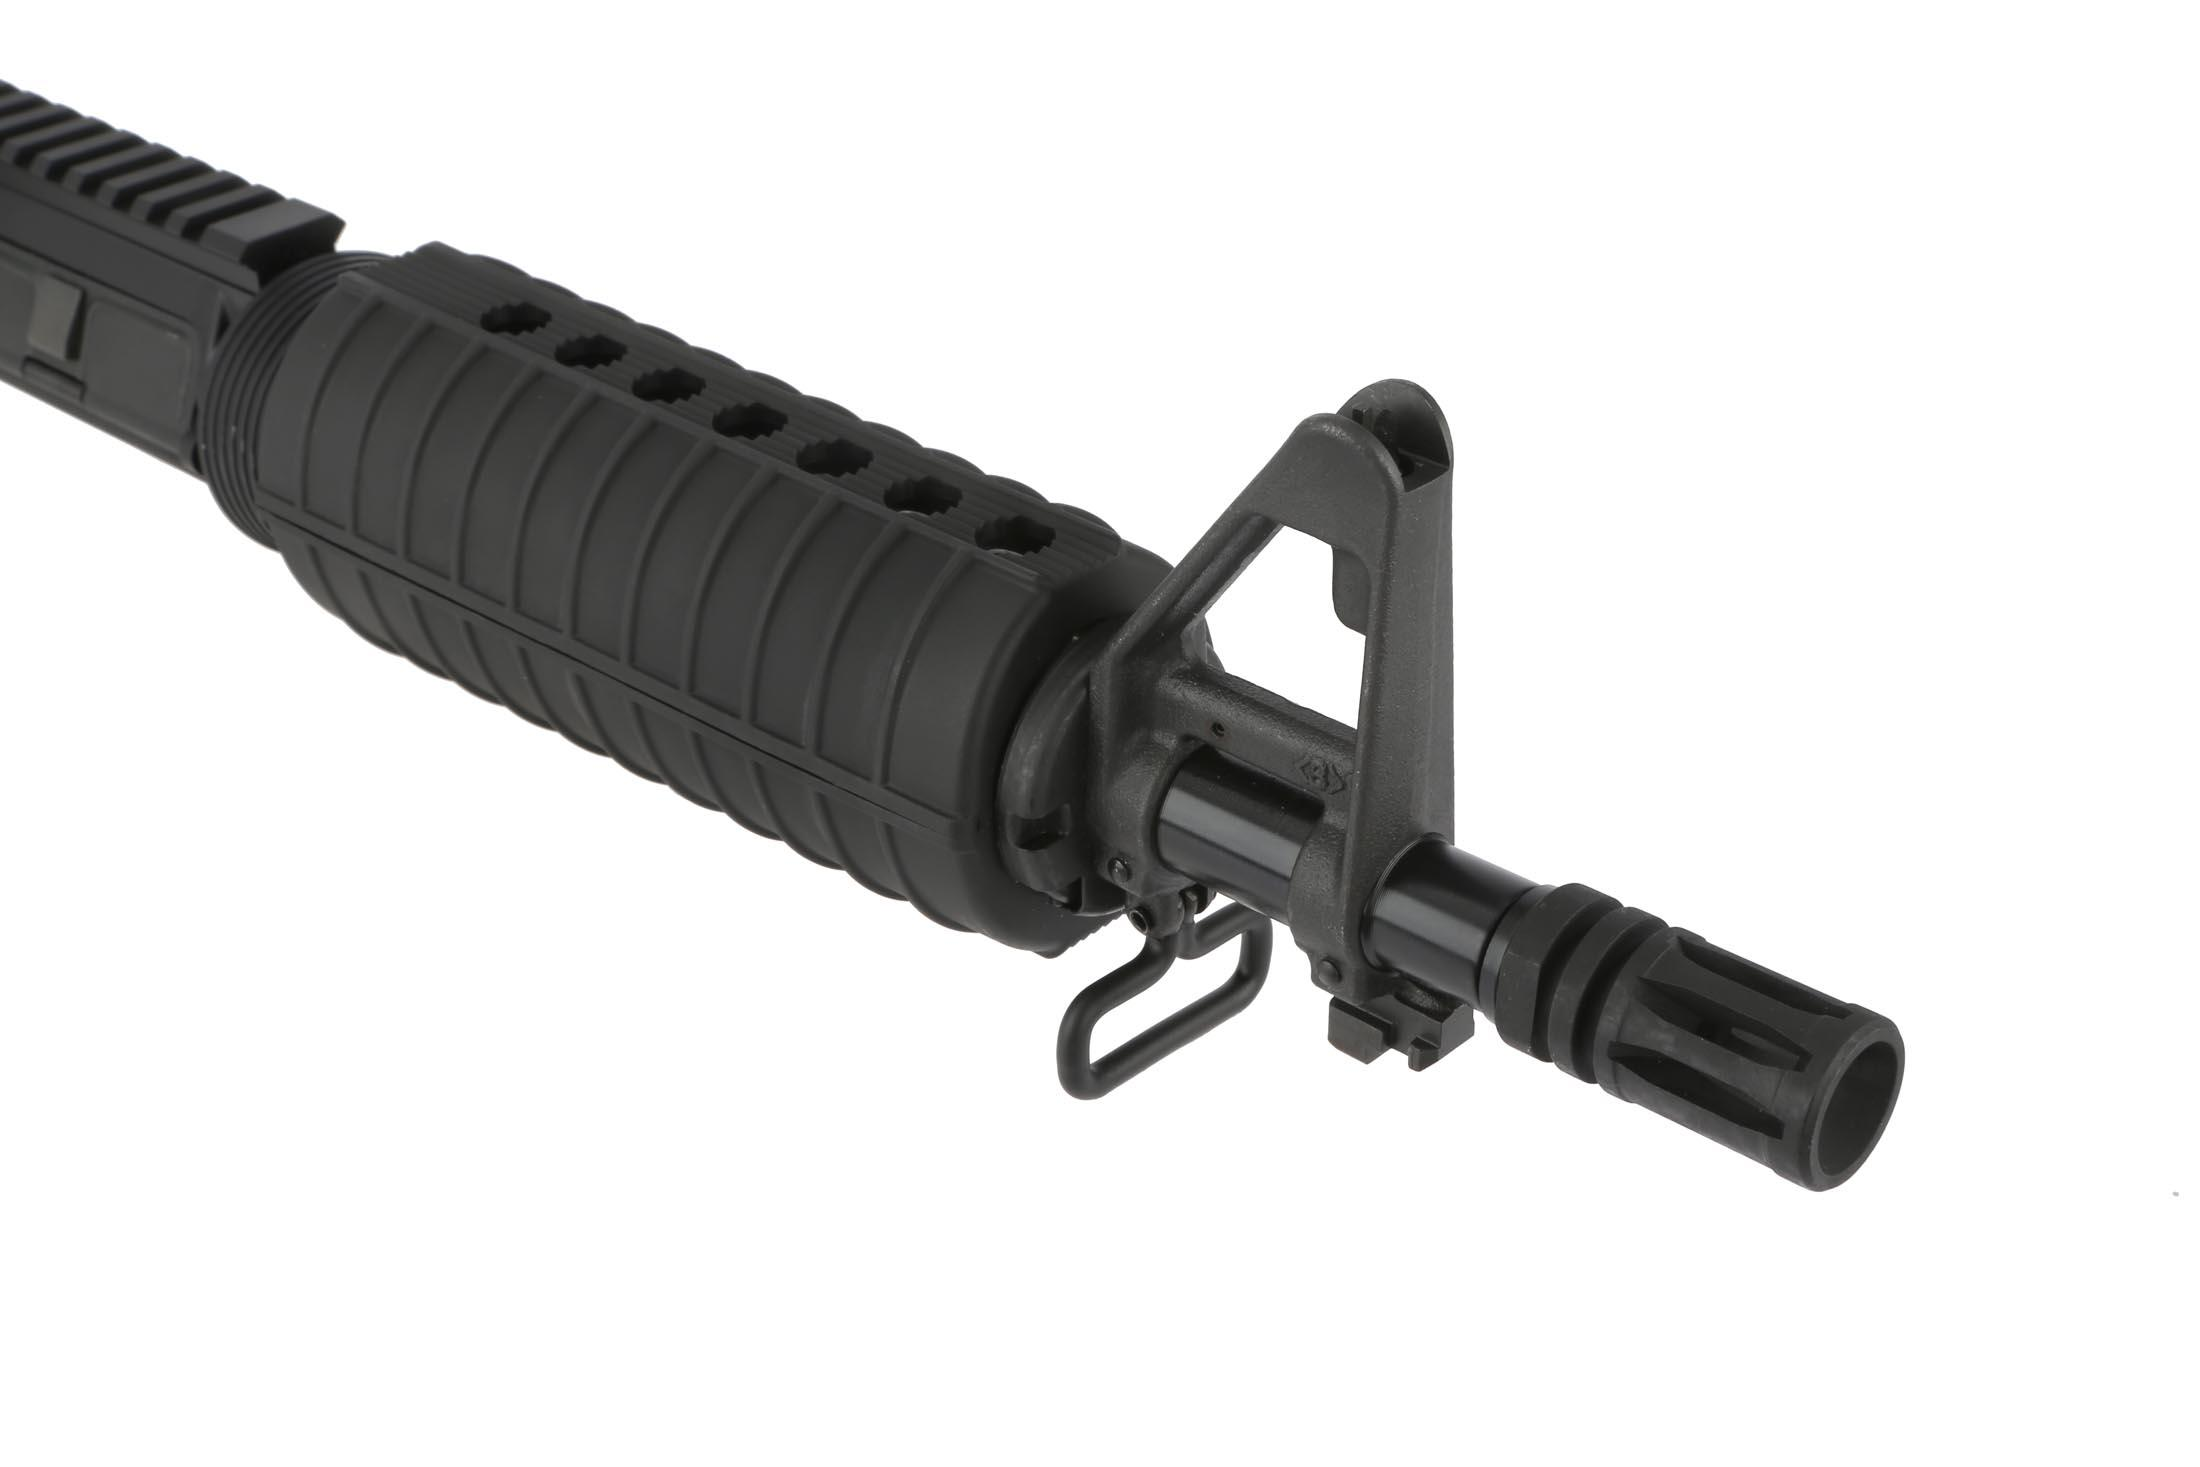 Palmetto State Armory 10 5 5 56 Barreled Upper With